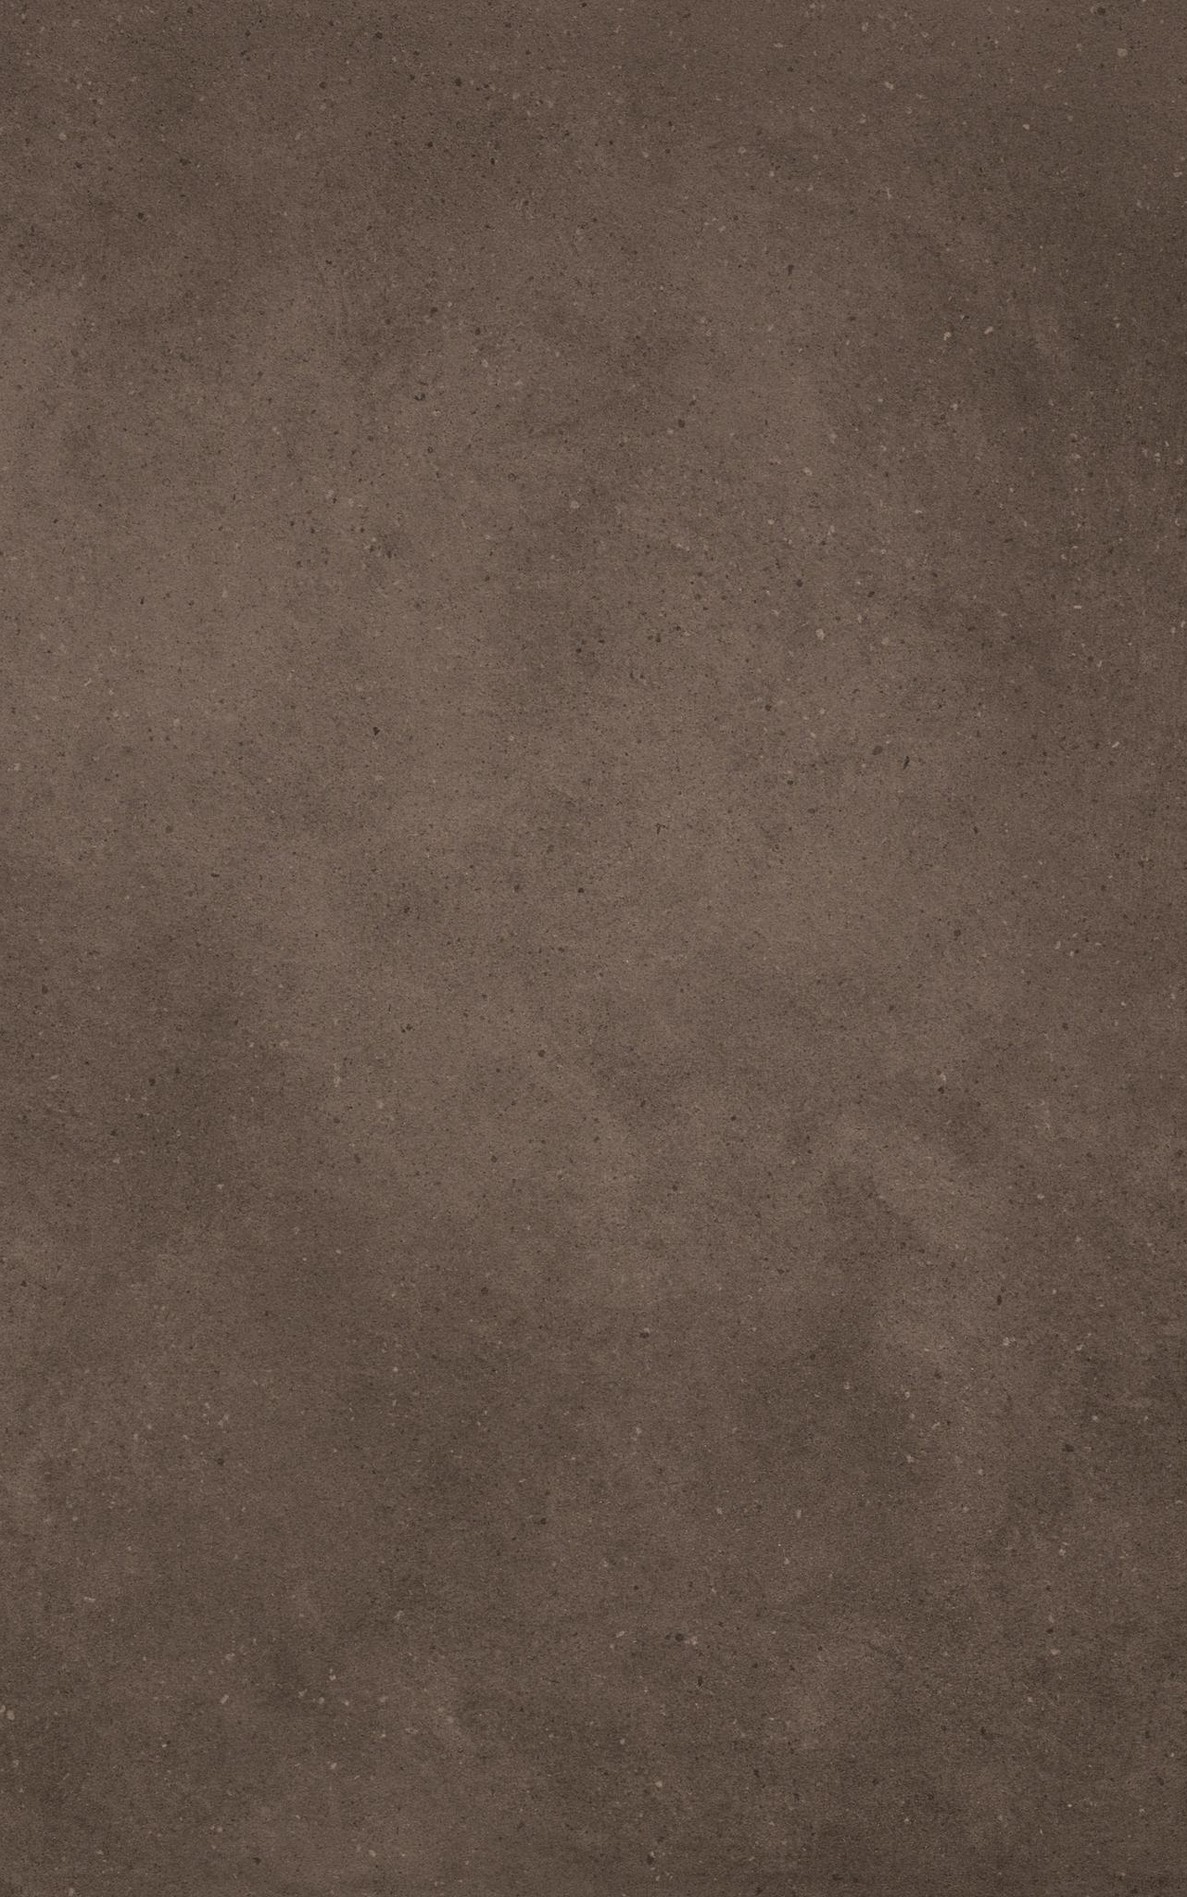 Dwell Brown Leather 30×60